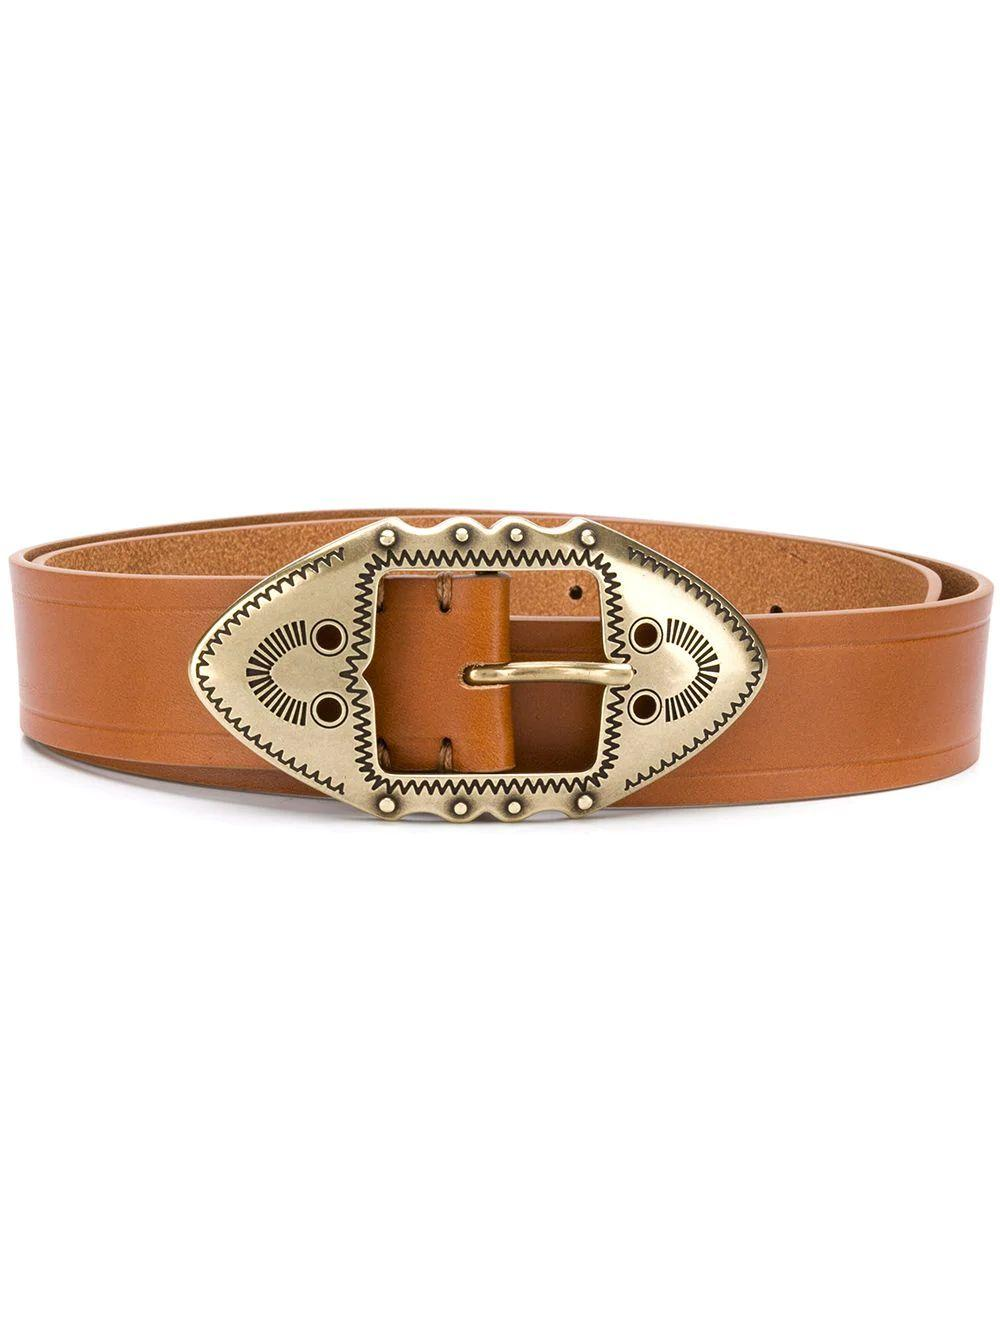 Vintage Buckle Belt Item # BUCKY